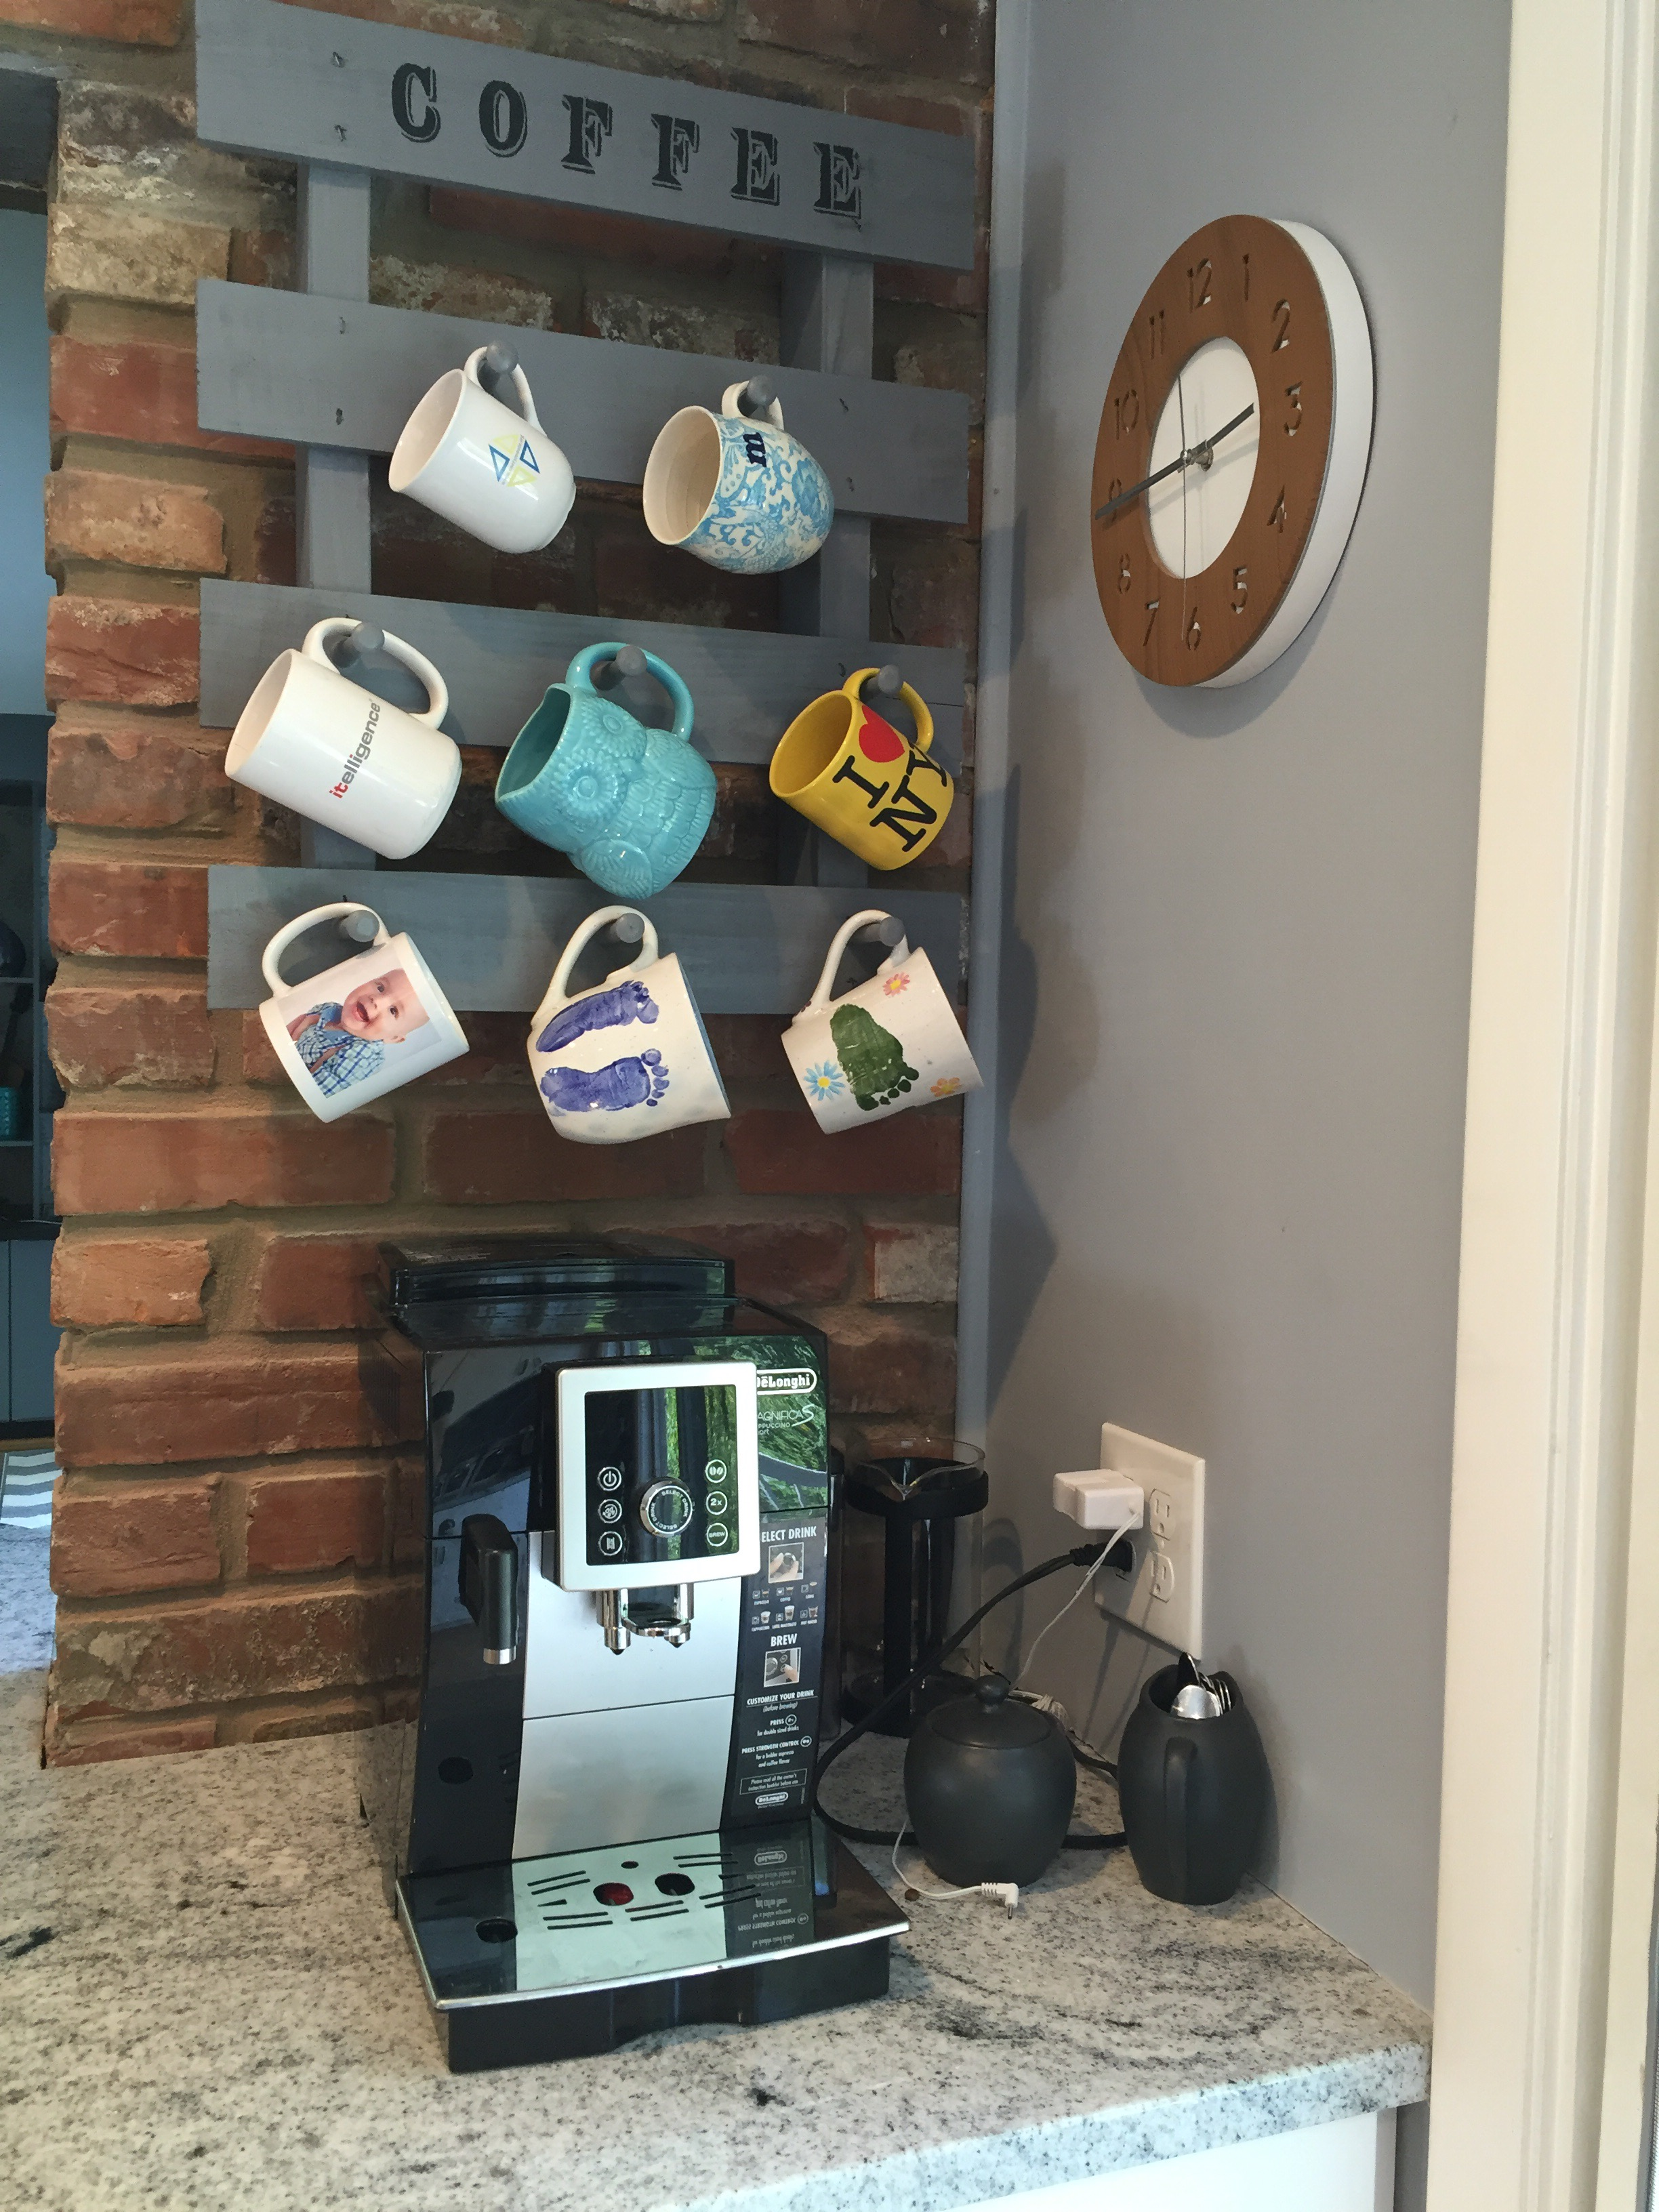 And Now We Still Get Really Good Coffee And Can Display Our Favorite Mugs!  Thanks For Checking Out My Kitchen Renovation! Part 66